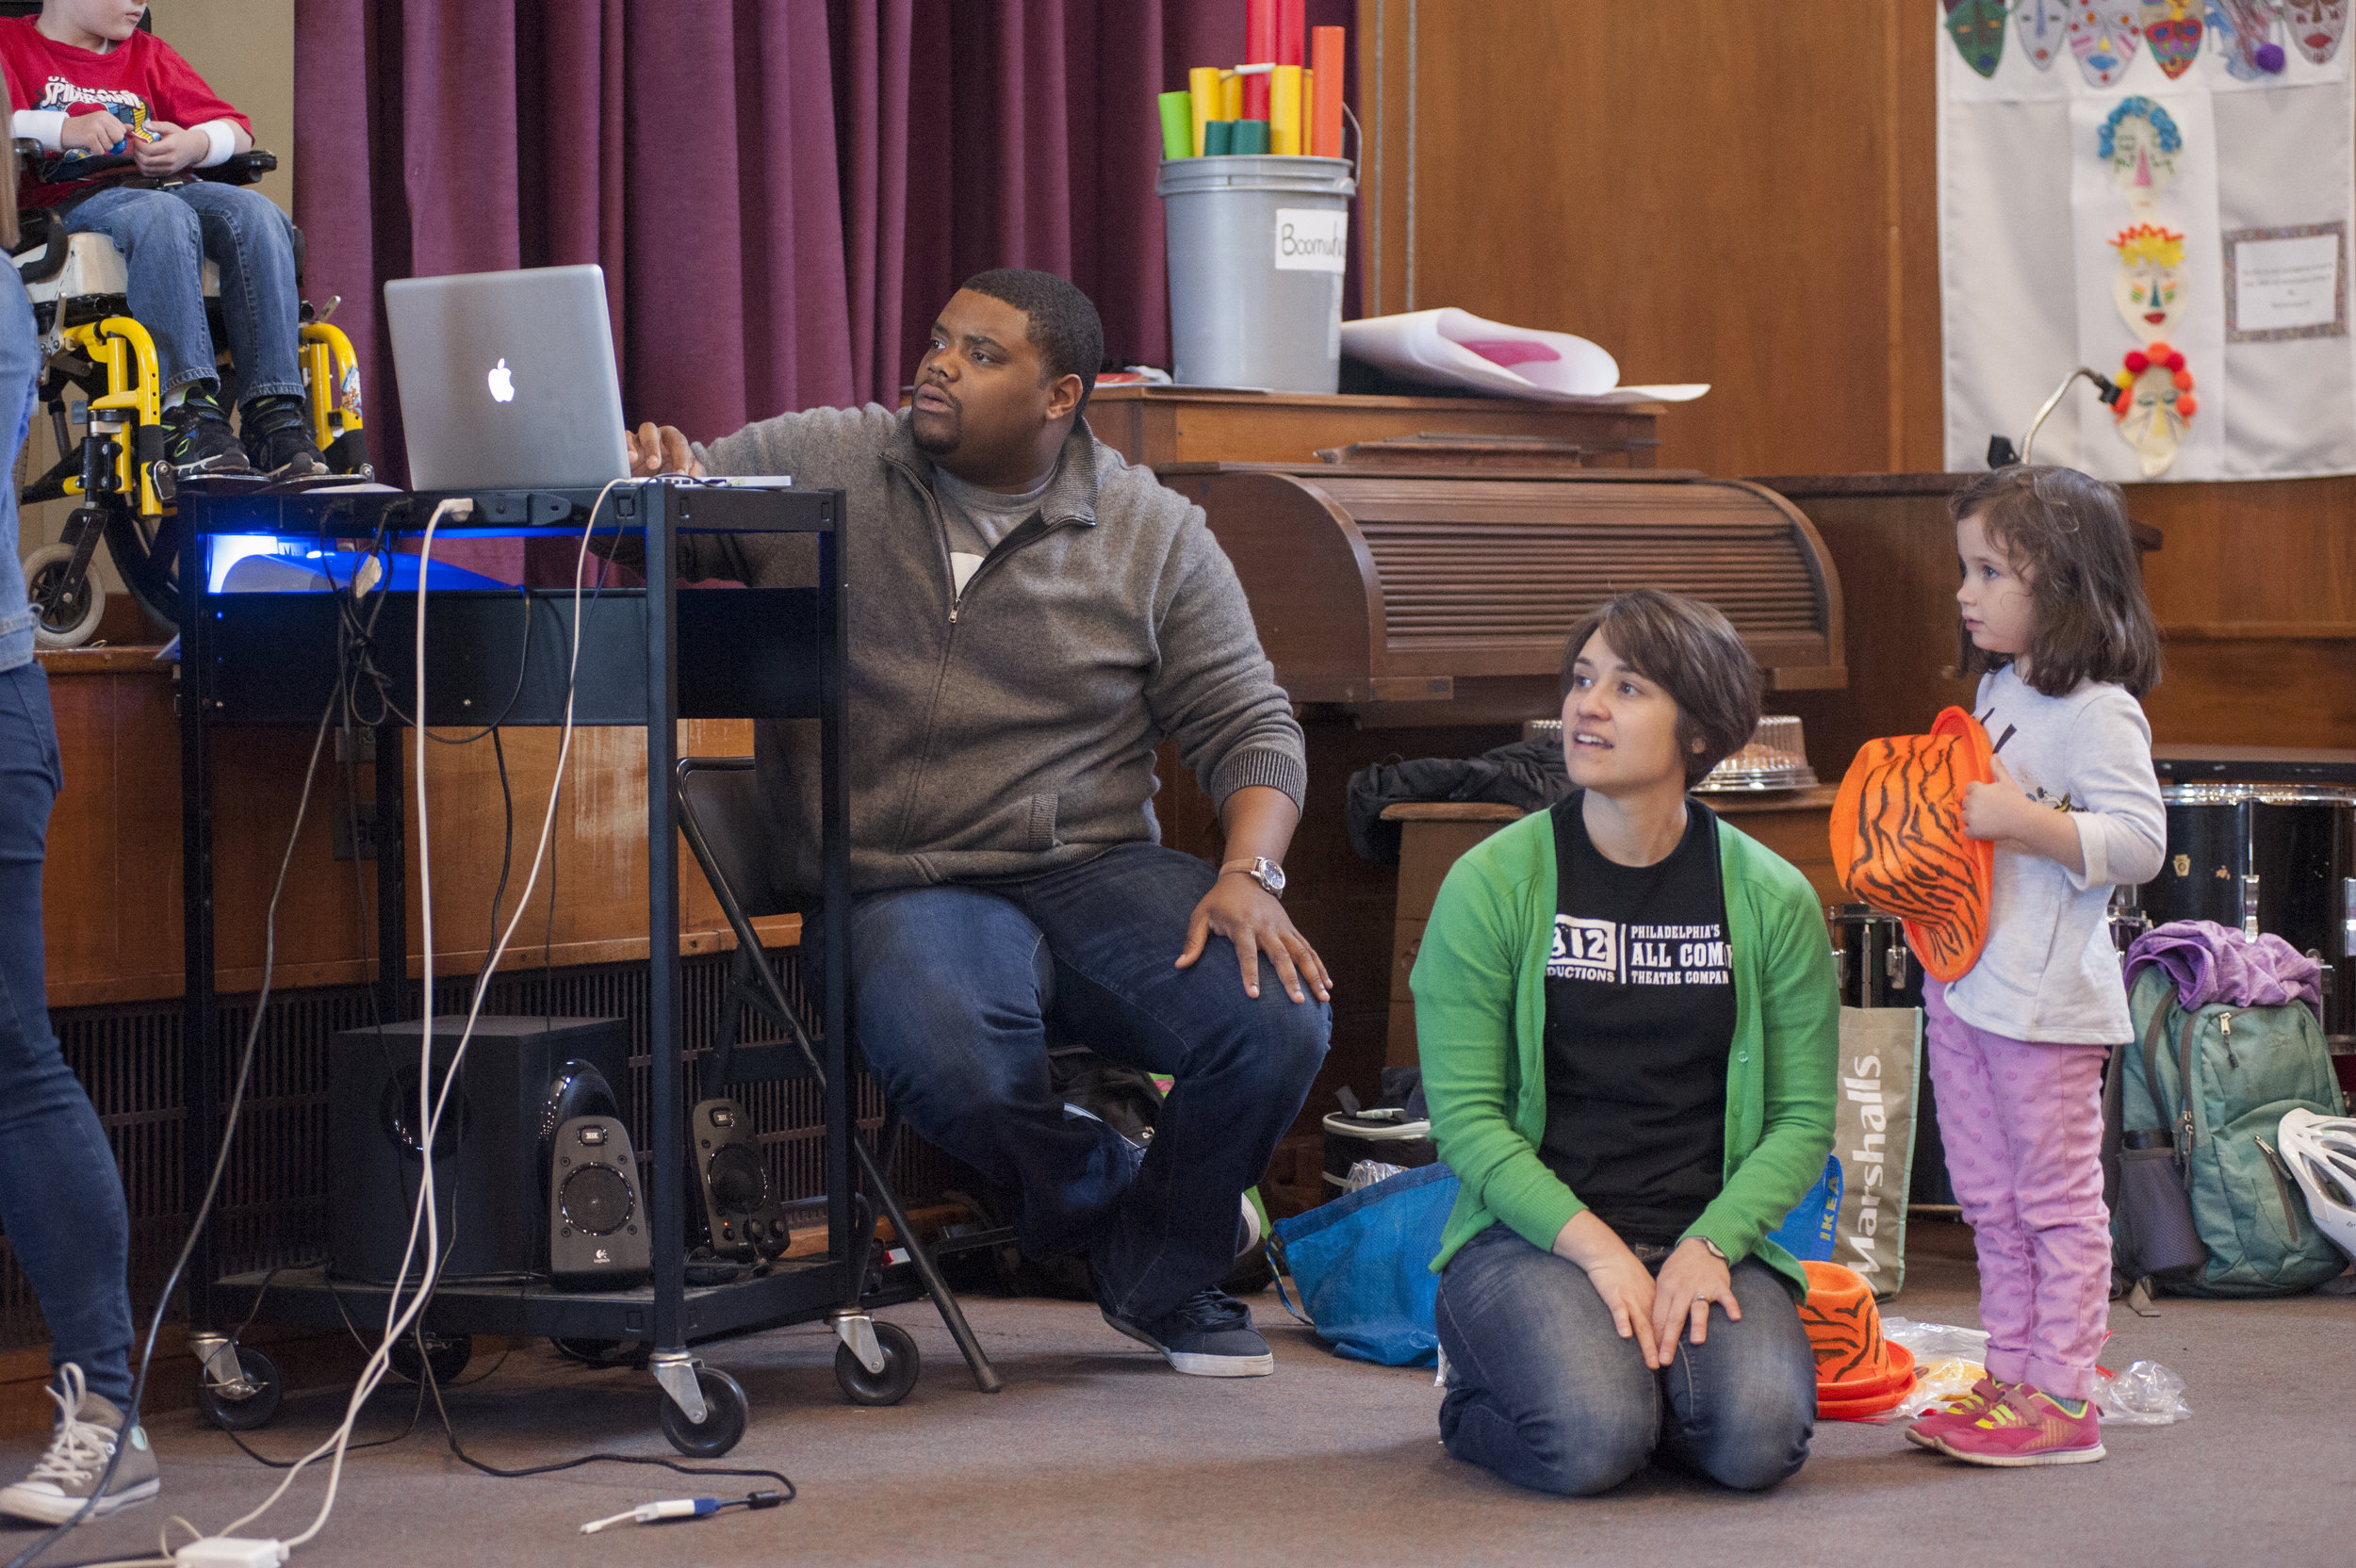 Actor/ Educator Nick Parker with Education Director Marla Burkholder at the Widener Memorial School year-end student performance through 1812 Outreach. May, 2017. Photo by John Flak.